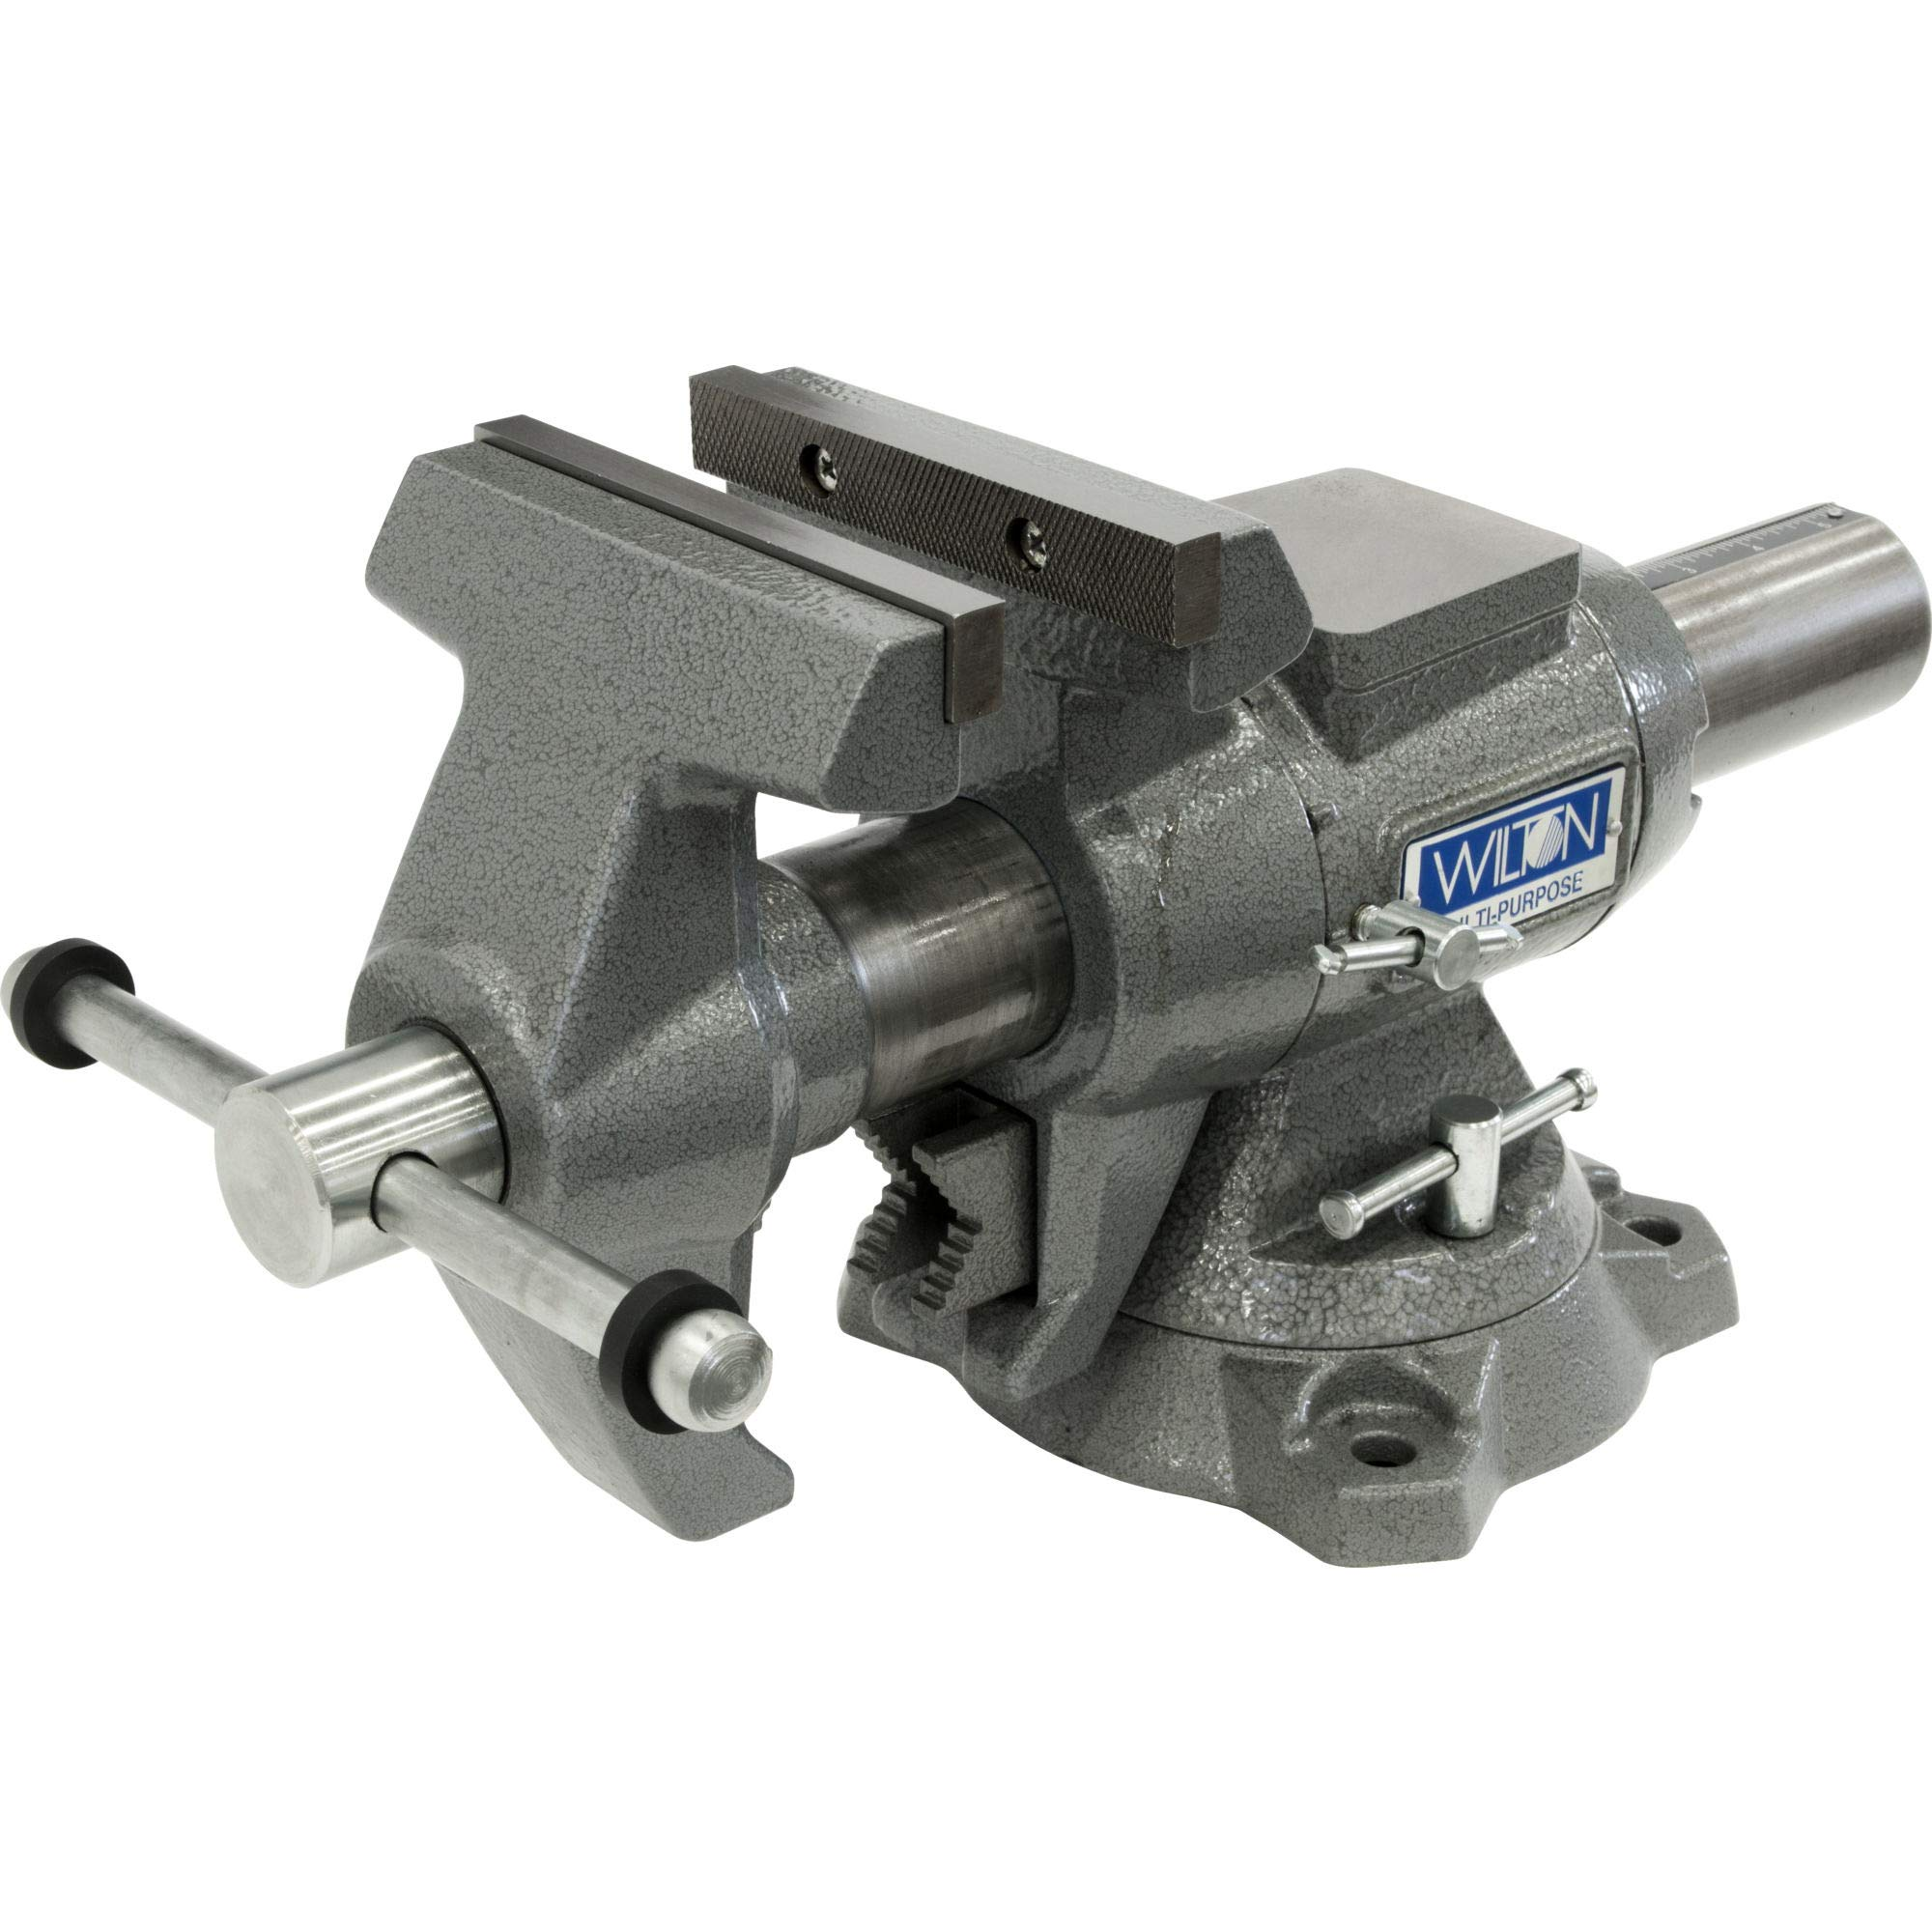 550P, Multi-Purpose Bench Vise, 5-1/2'' Jaw Width, 5'' Jaw Opening, 360° Rotating Head by Unknown